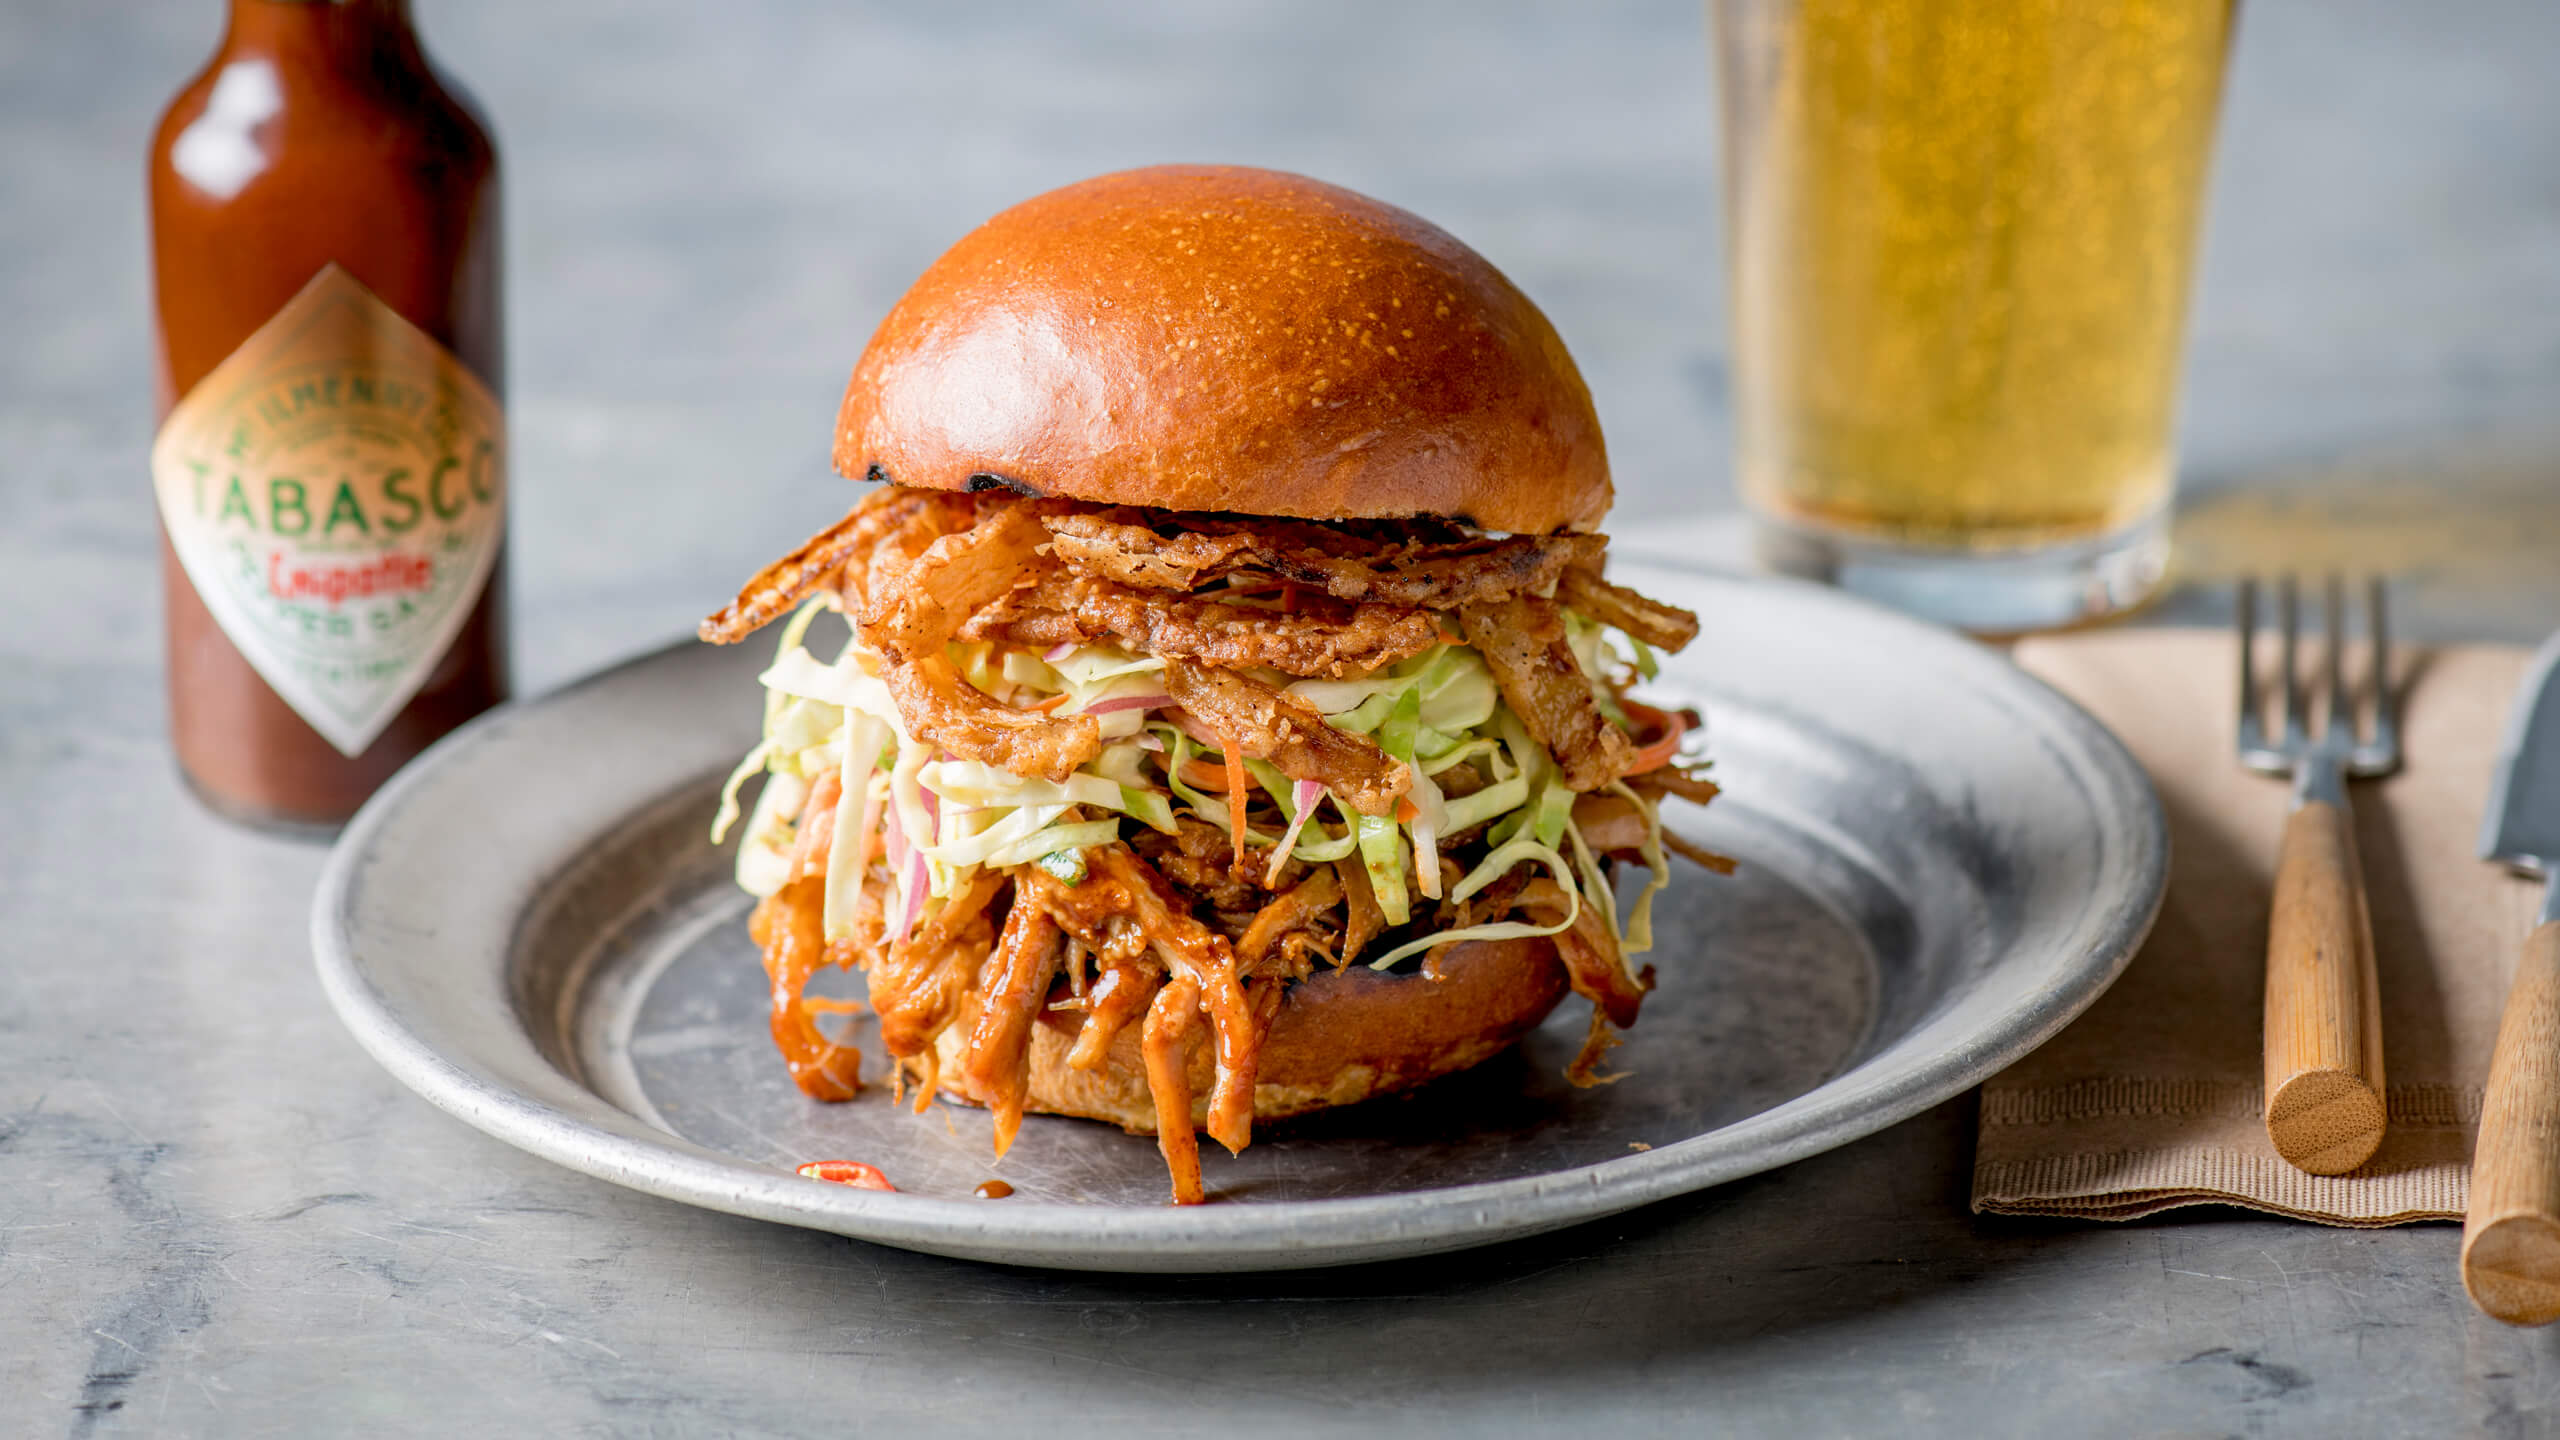 BBQ Pork Sandwich with Onion Straws and Coleslaw